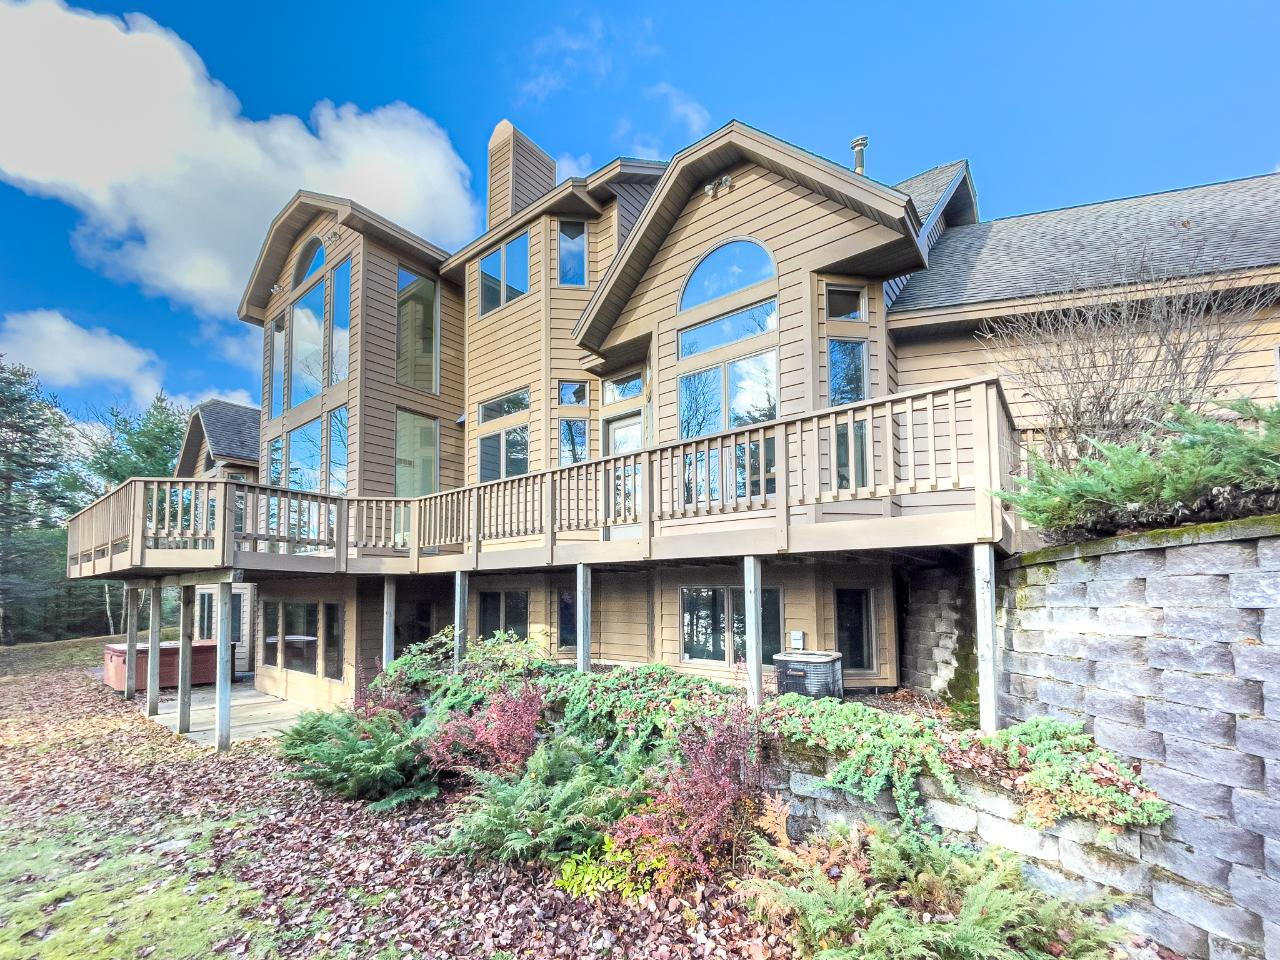 Harris Lake MASTERPIECE on 2.24 acres w/211' of sand frontage! The towering entrance leads to a huge living room w/magnificent 28' high ceiling + massive Lannon stone FP. A chef's kitchen has a double oven Viking range, Sub-Zero refrigerator, wine cooler, cabinetry of the highest quality & much more! The master suite includes a 2-way FP, huge bath, WIC, Jacuzzi tub, separate shower & large vanity. Two more large BRs, full bath, luxurious wet bar room/den, 1st flr laundry, lovely sitting rooms & much more round out the main floor. Upstairs, there's 4 more BRs & 2 full baths along w/loft overlooking the living room and entrance. Beautiful water and woods views from every room! The huge lower lvl features a giant masterfully finished family/rec room, W/O to patio area plus several storage areas along w/mechanicals. A spacious 3-car att garage has a large finished bonus room above for extra room! Sellers prefer to sell furnished. Northwoods luxury living at its best--see it now! Home is in process of being repainted. Painting will be complete by closing. NOTE: Fire number was changed by the township from 14266 to 14263.